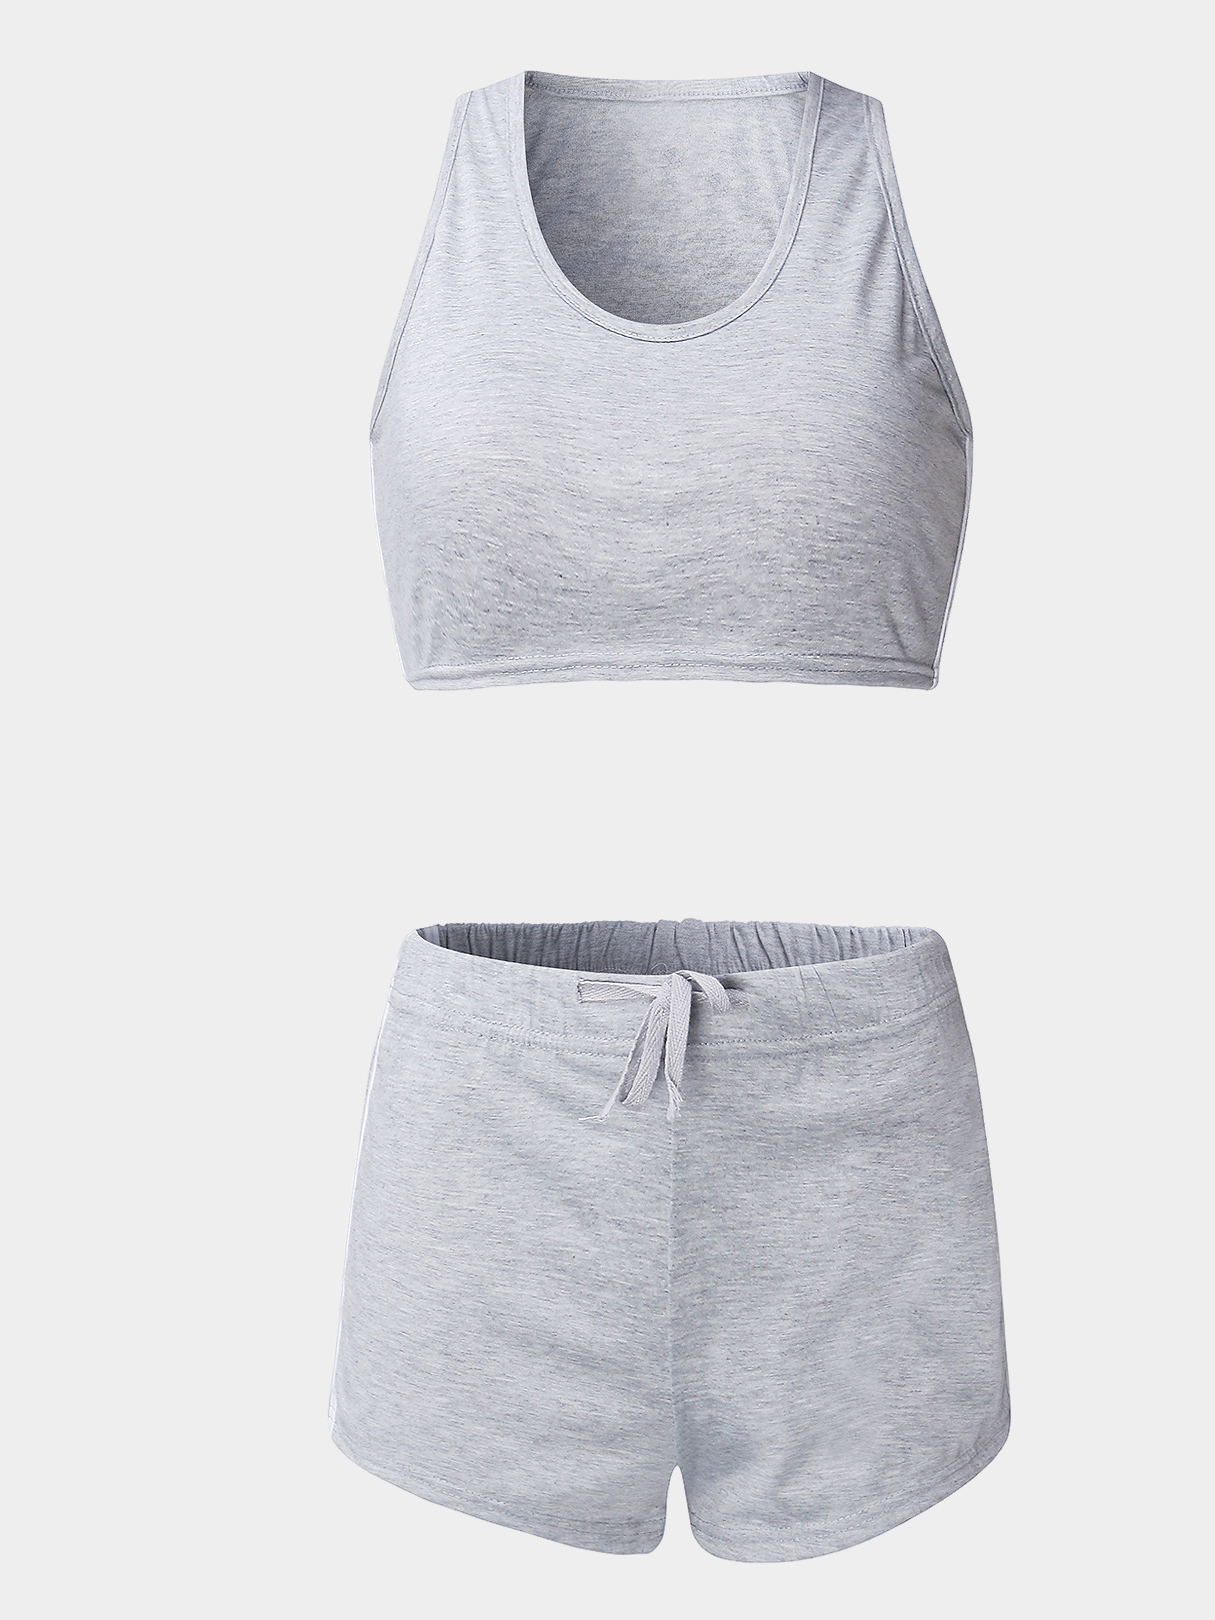 Grey Sexy Sleeveless Crop Top & Drawstring Waist Skorts Co-ord caso e9 silver яйцеварка